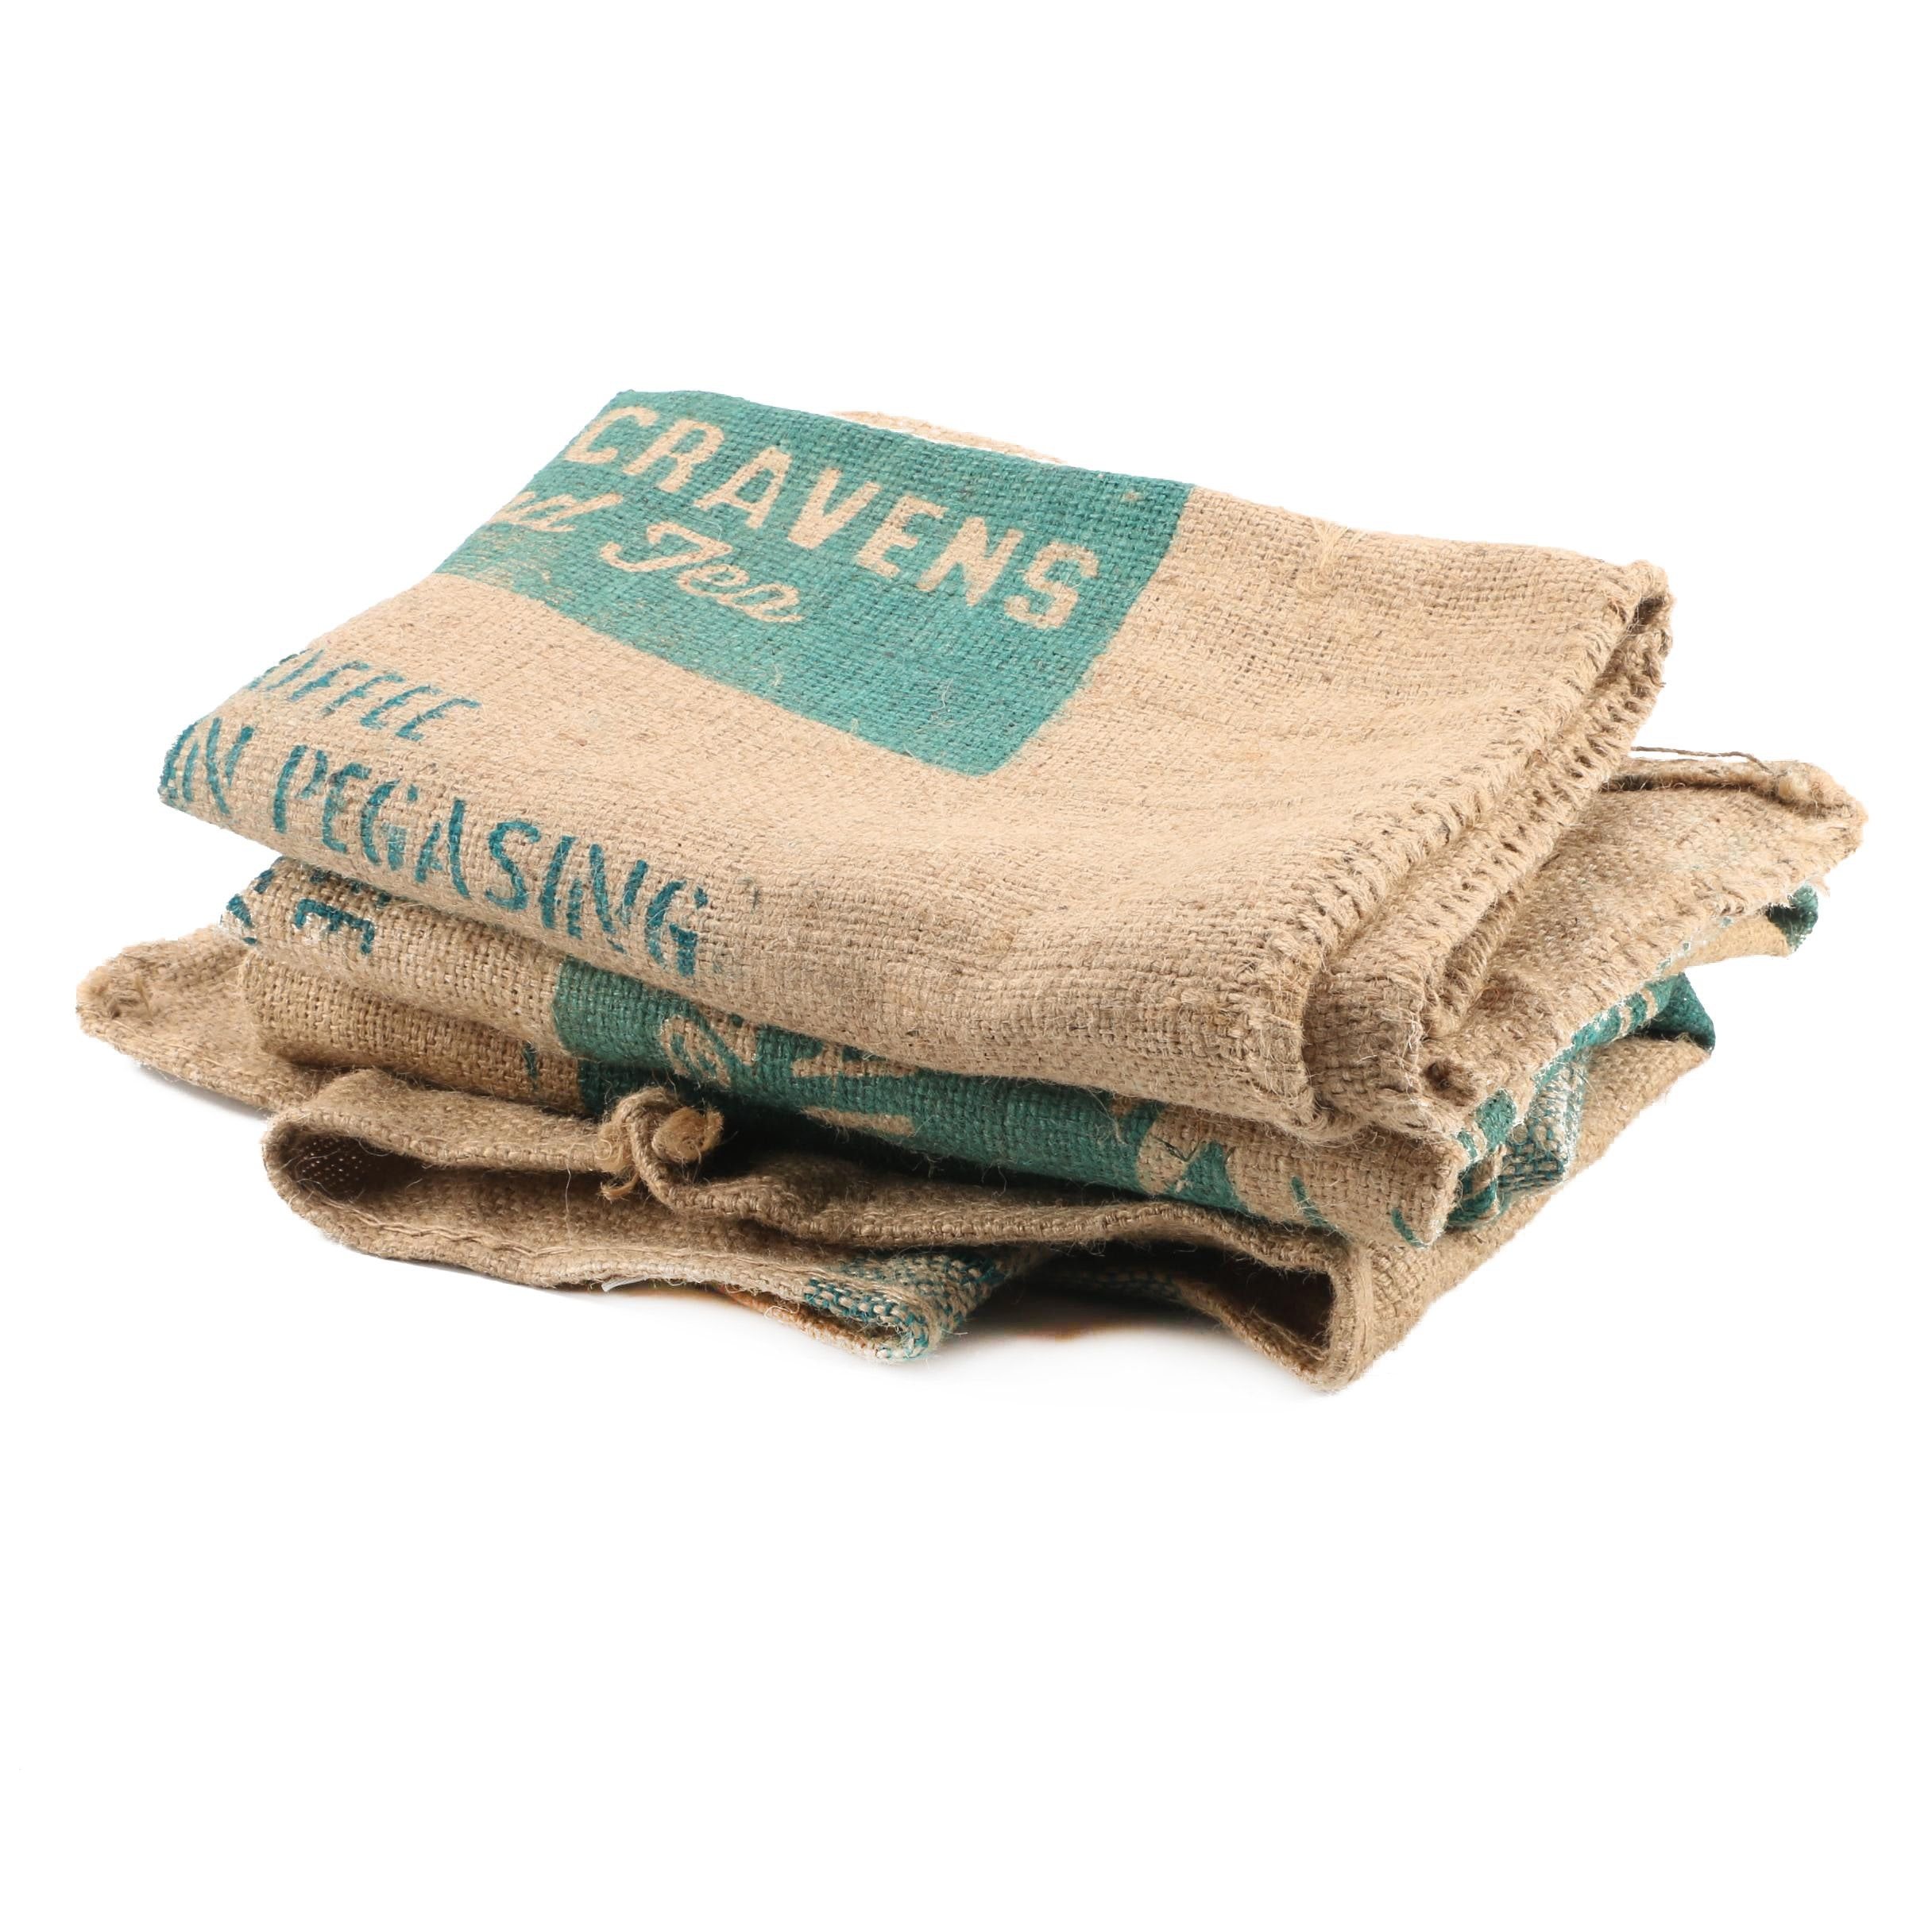 Hubbard Cravens Coffee and Tea Burlap Sacks